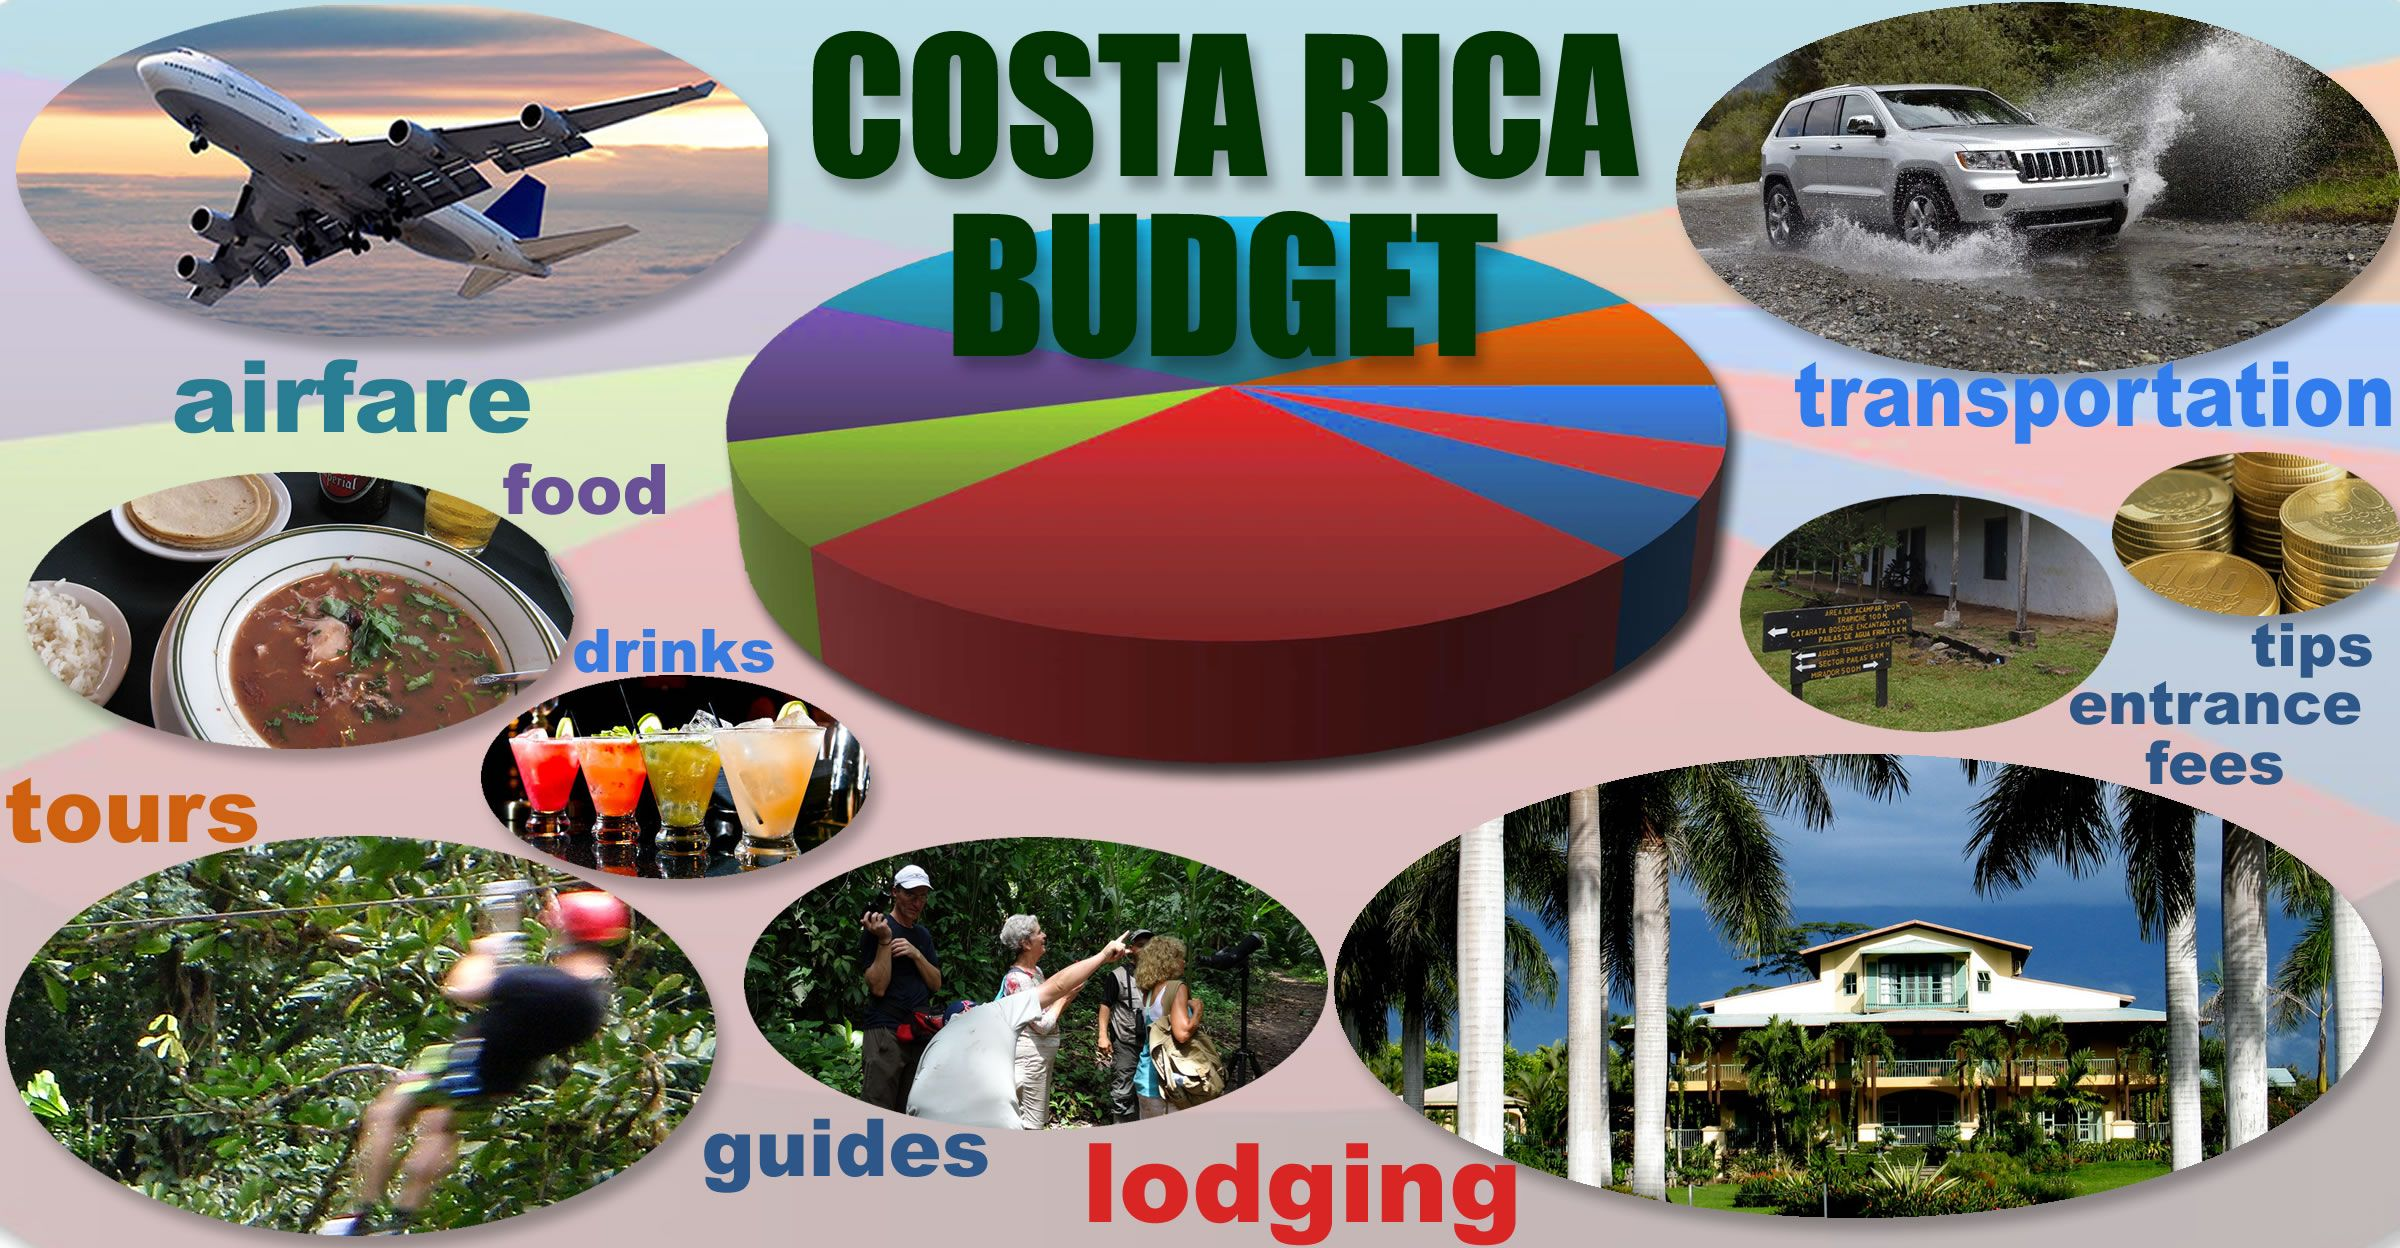 A few of the things you need to consider when budgeting